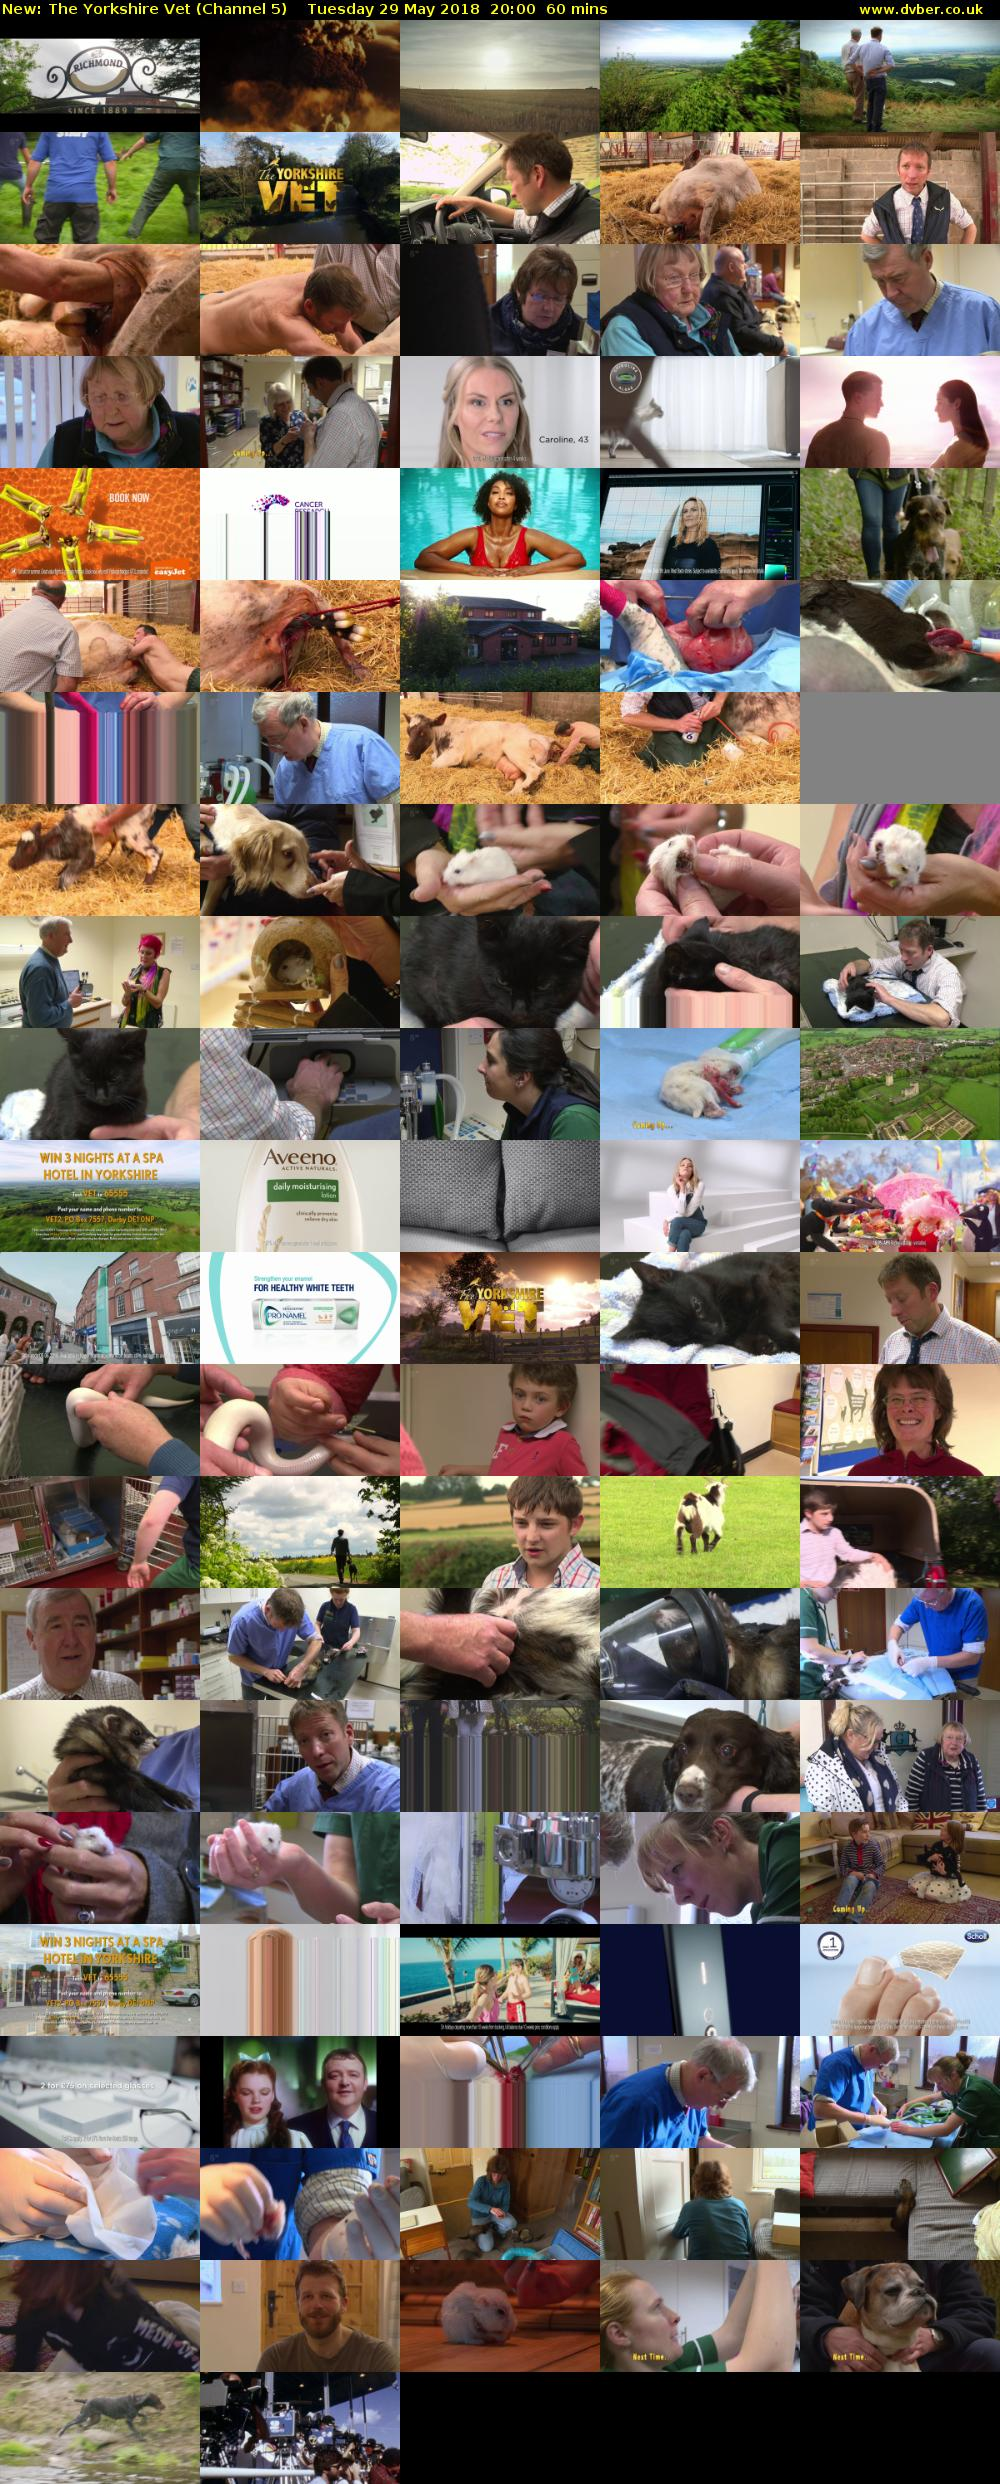 The Yorkshire Vet (Channel 5) Tuesday 29 May 2018 20:00 - 21:00